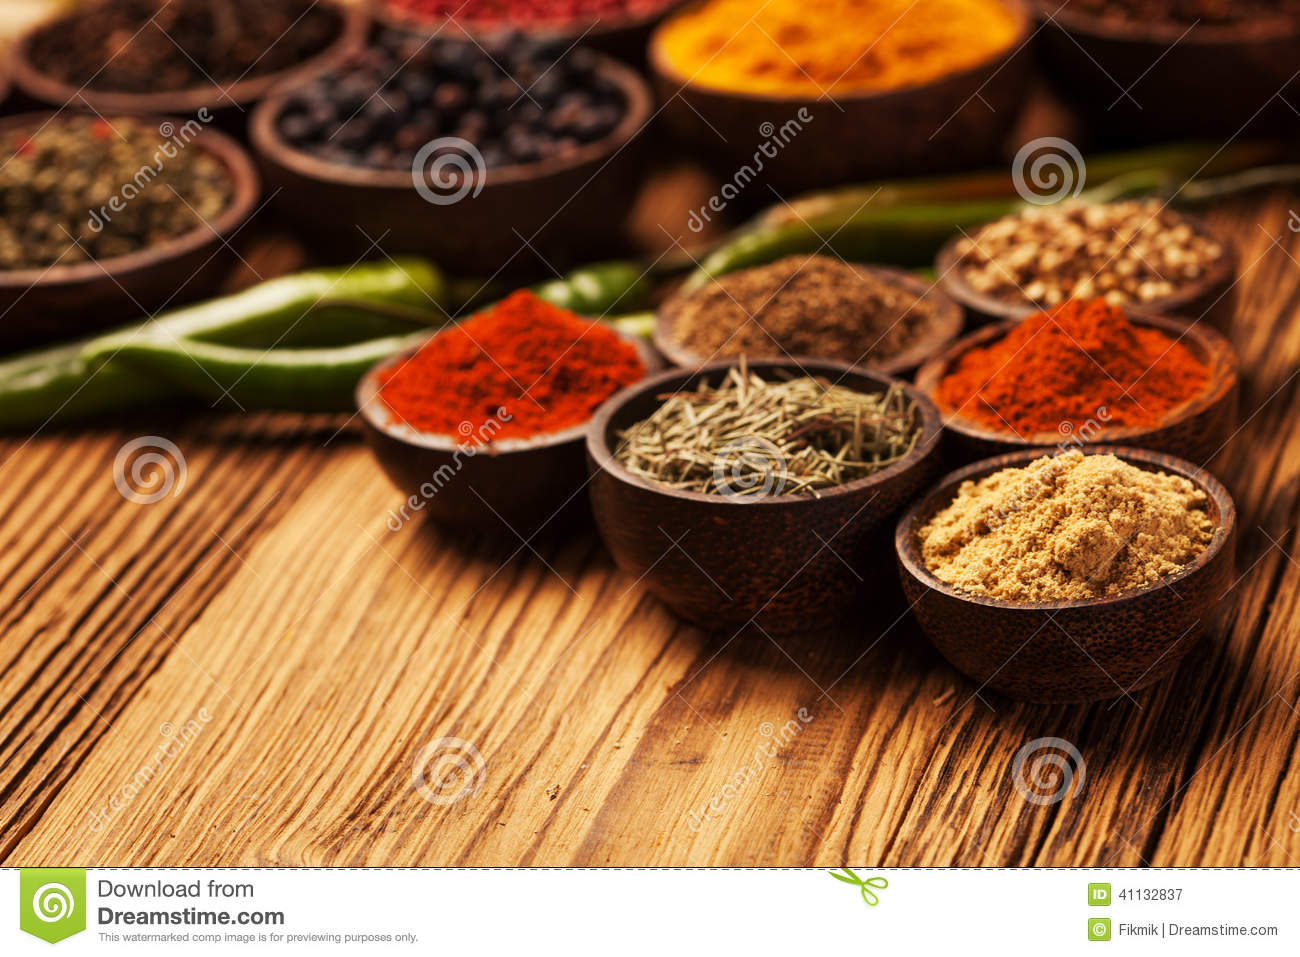 Spices and herbs in wooden bowls stock photo image for Cuisine wooden